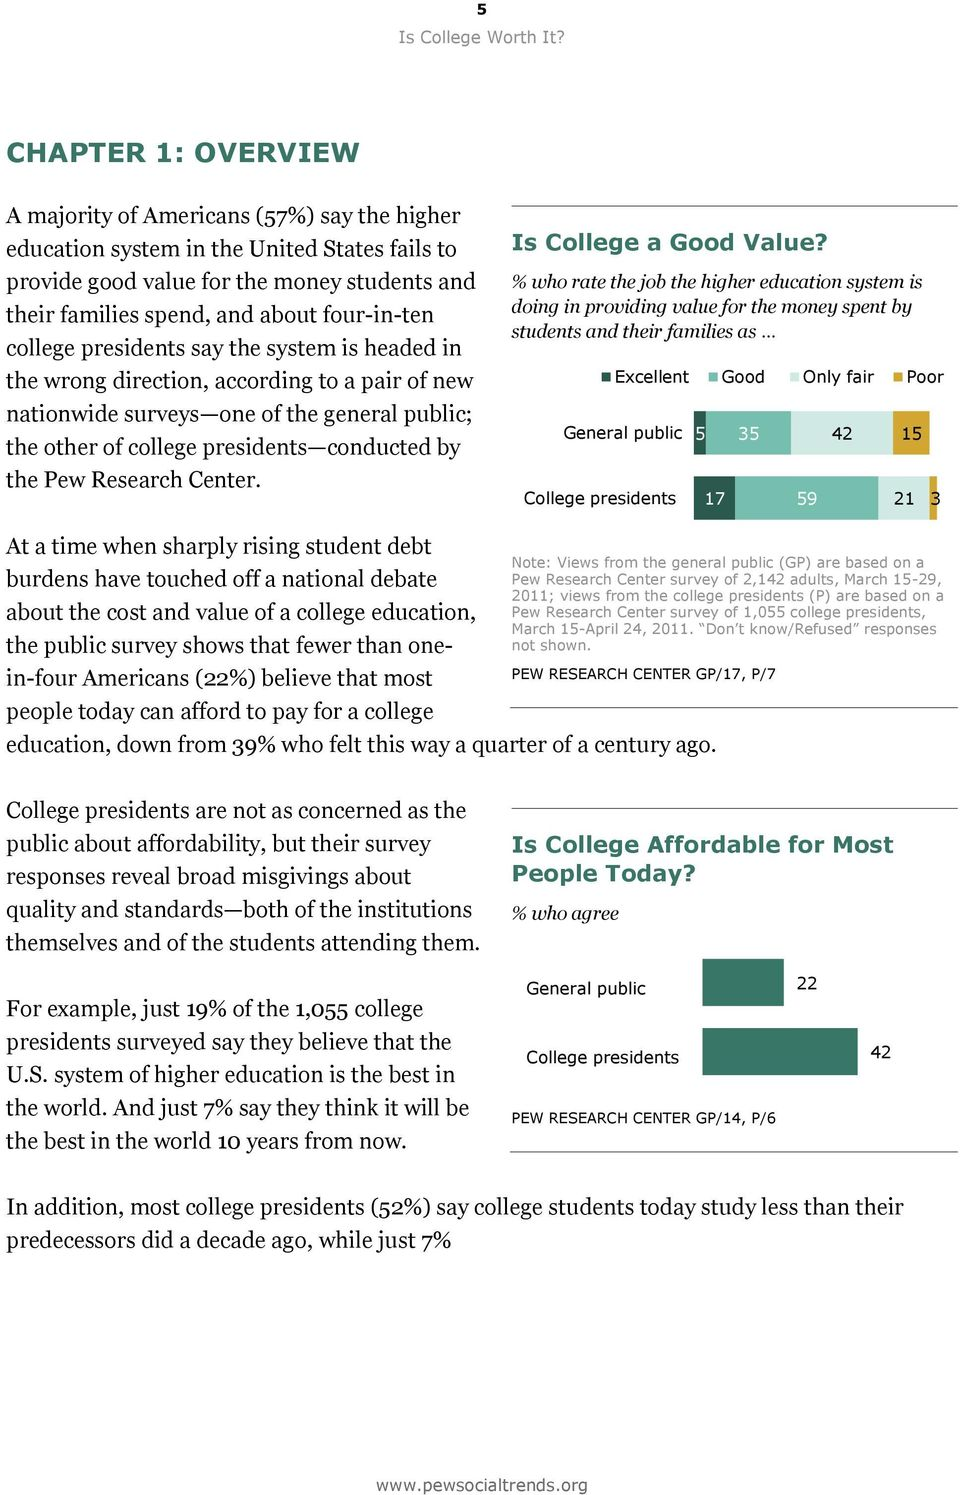 the Pew Research Center. Is College a Good Value?